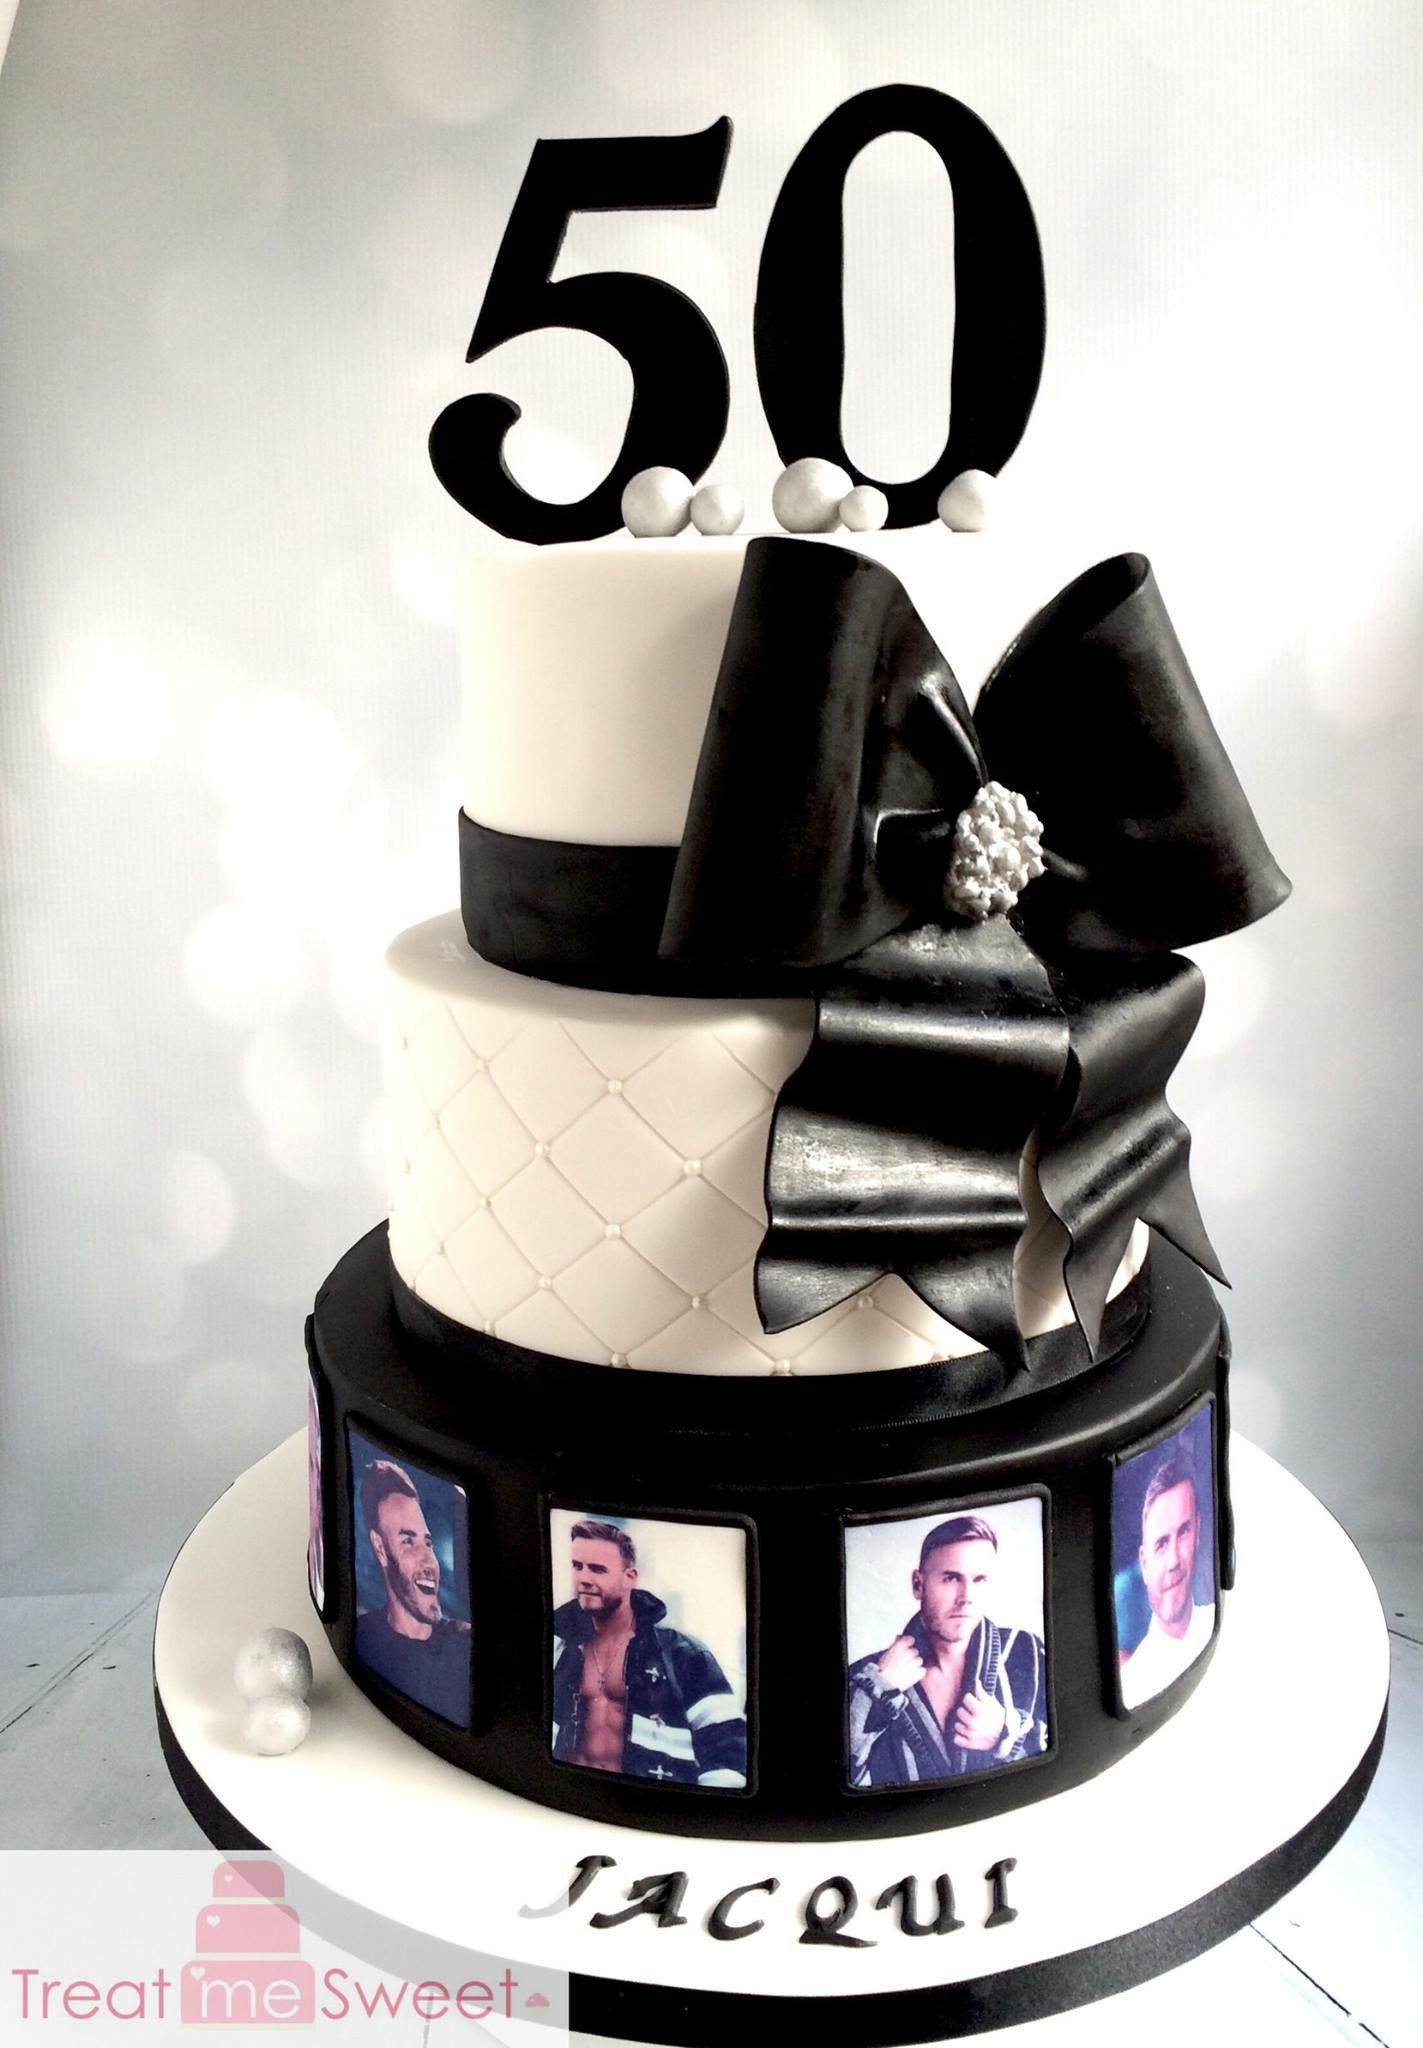 3 Tier Black and White Gary Barlow cake with quilting and Large bow - Treat me Sweet